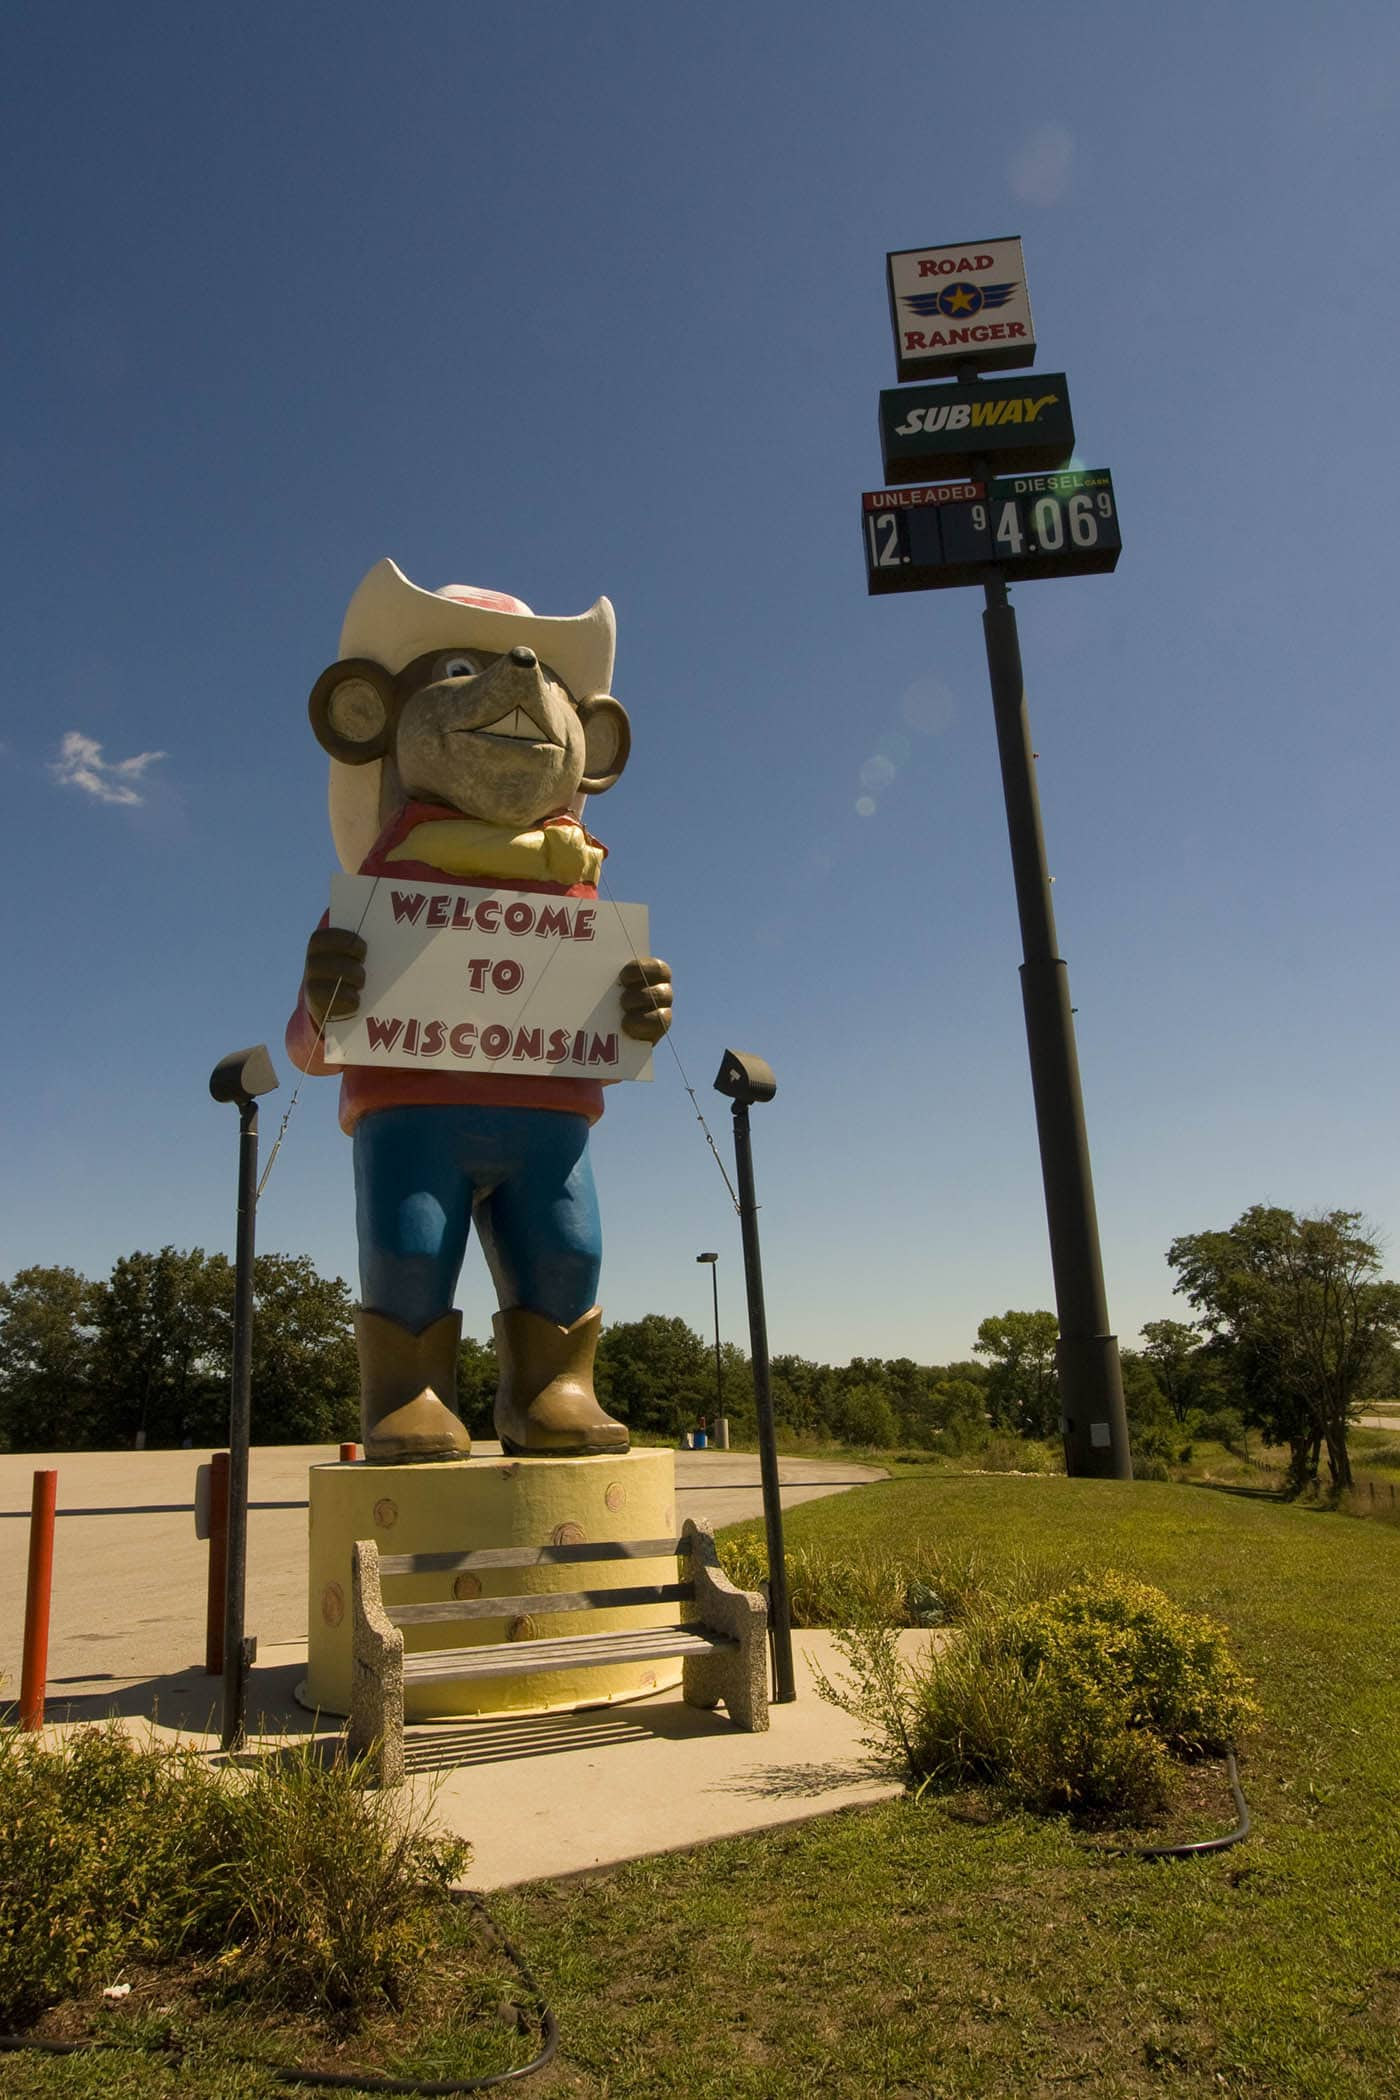 Giant Mouse with Cheese roadside attraction in Oakdale, Wisconsin. Labor Day Chicago to Mount Rushmore Road Trip.